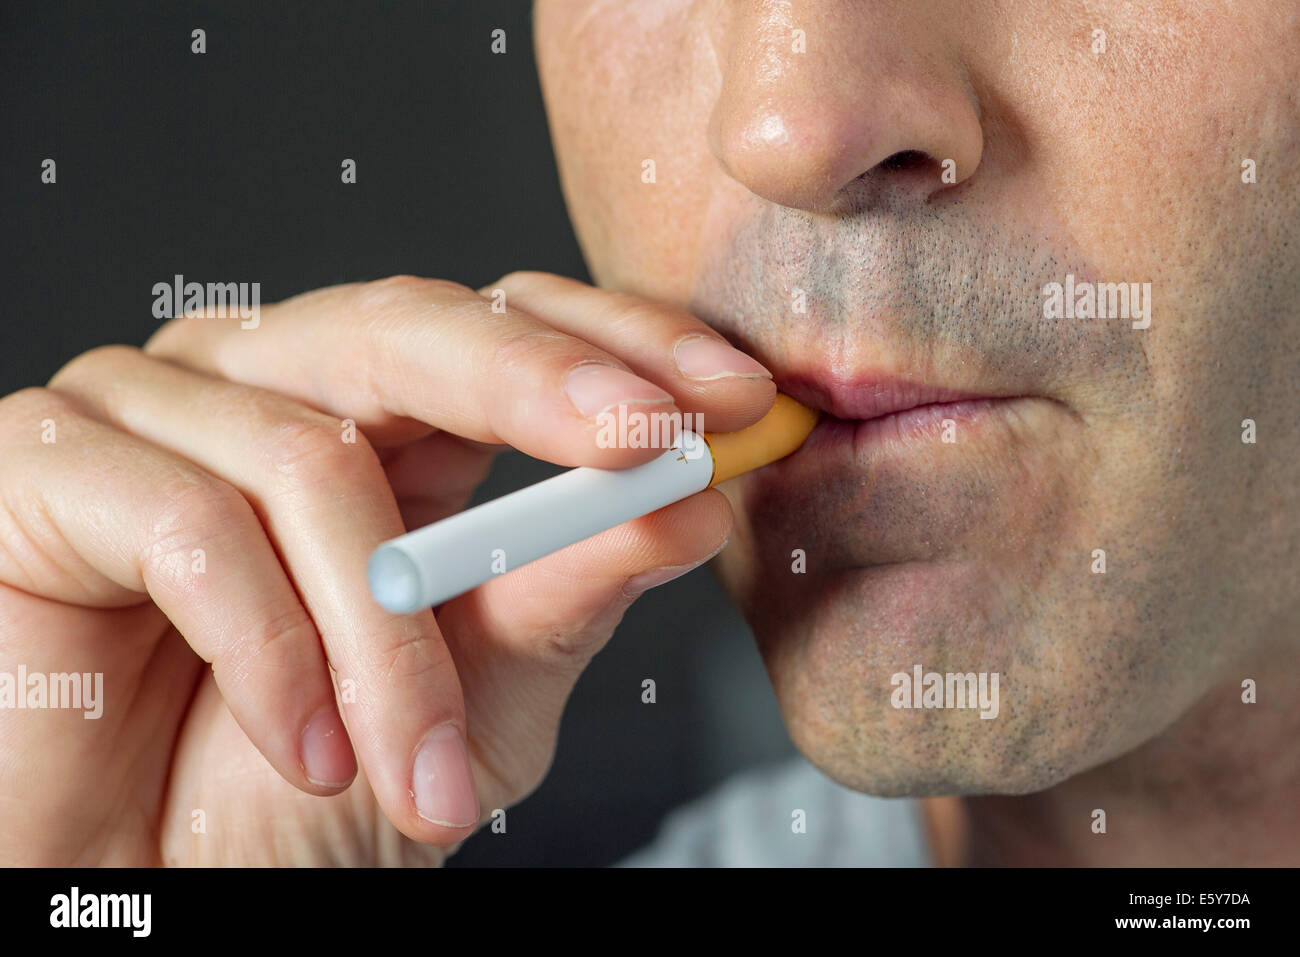 Man smoking electonic cigarette, cropped Stock Photo